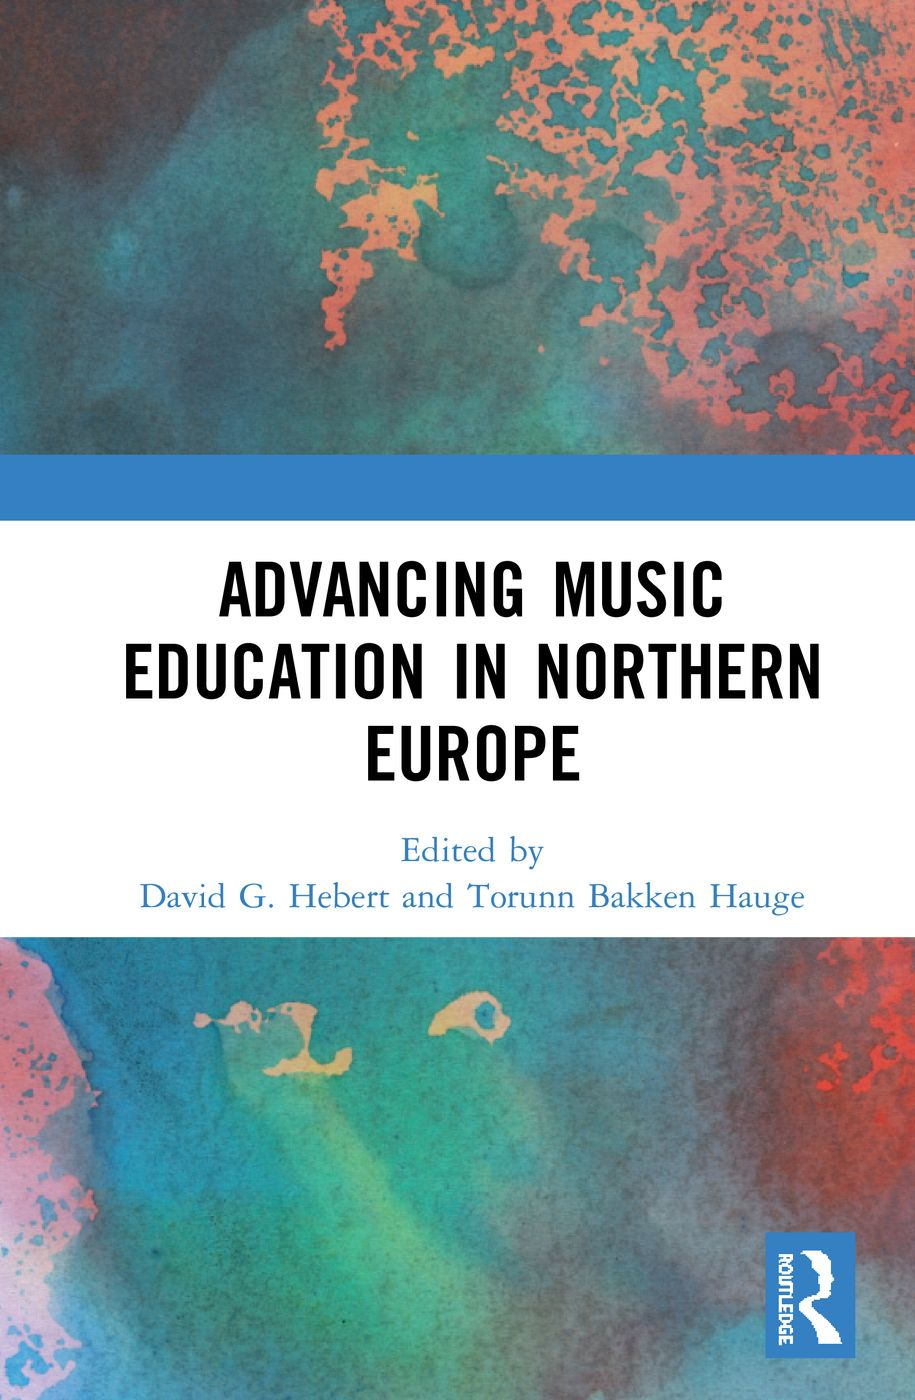 The cover of the book Advancing Music Education